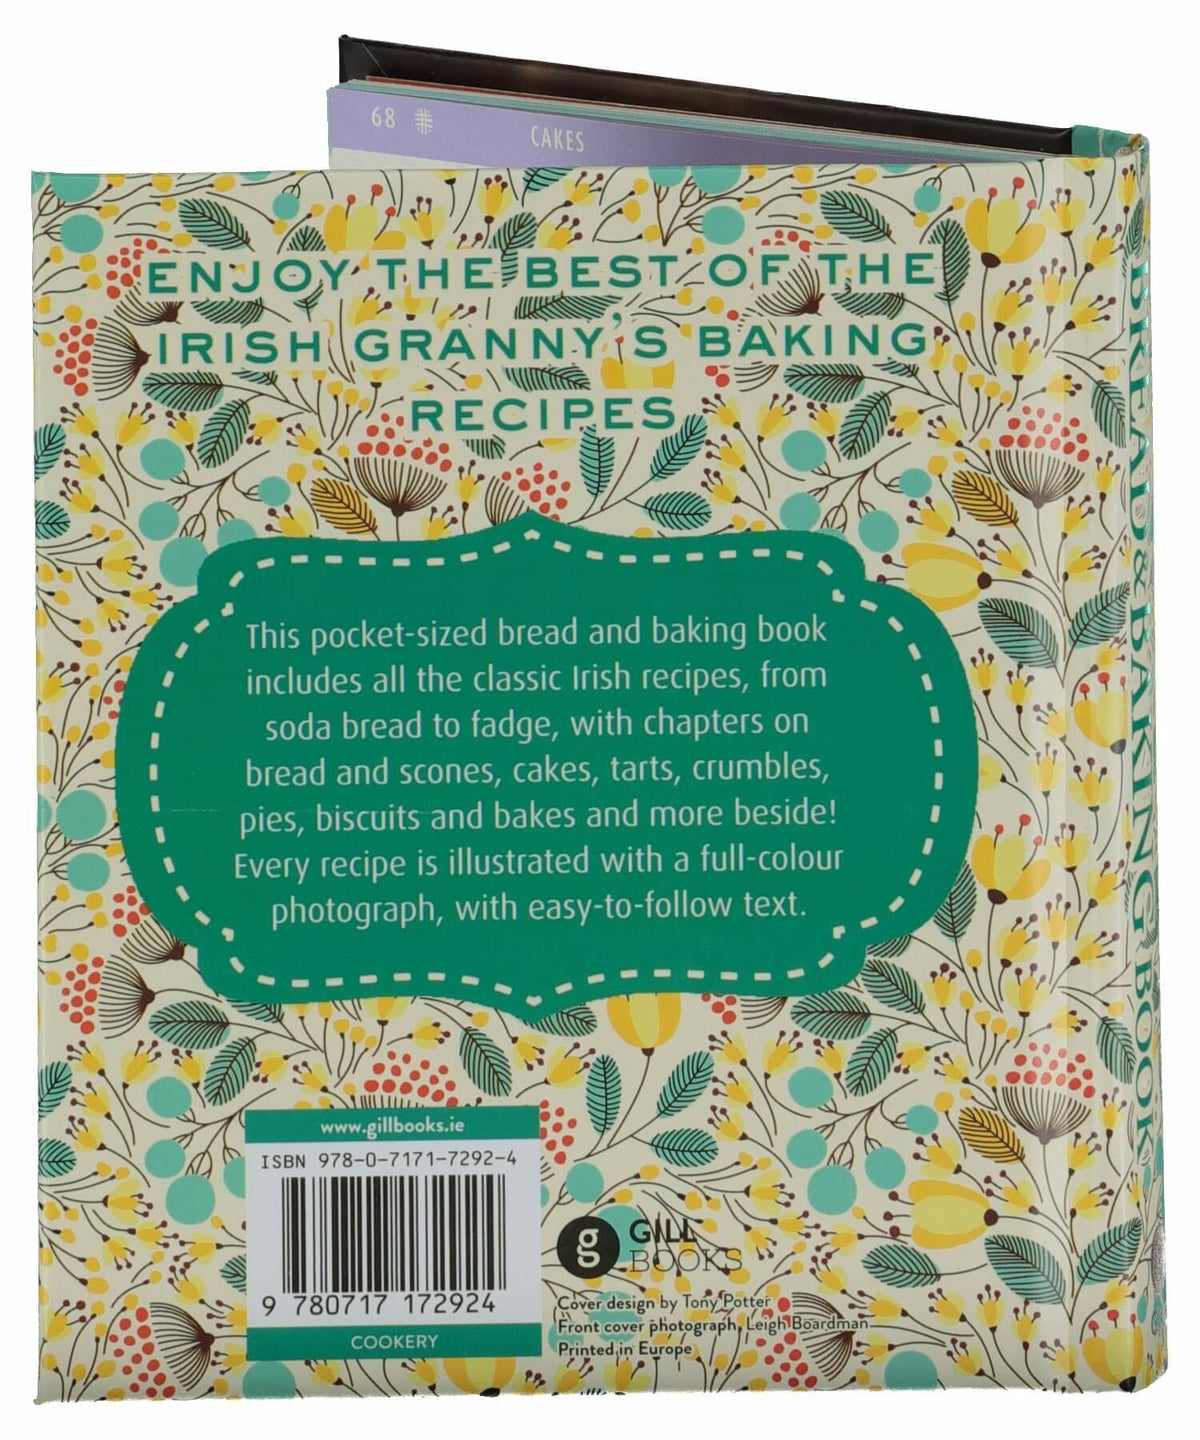 Pocket - Bread & Baking - [Gill & MacMillan] - Books & Stationery - Irish Gifts